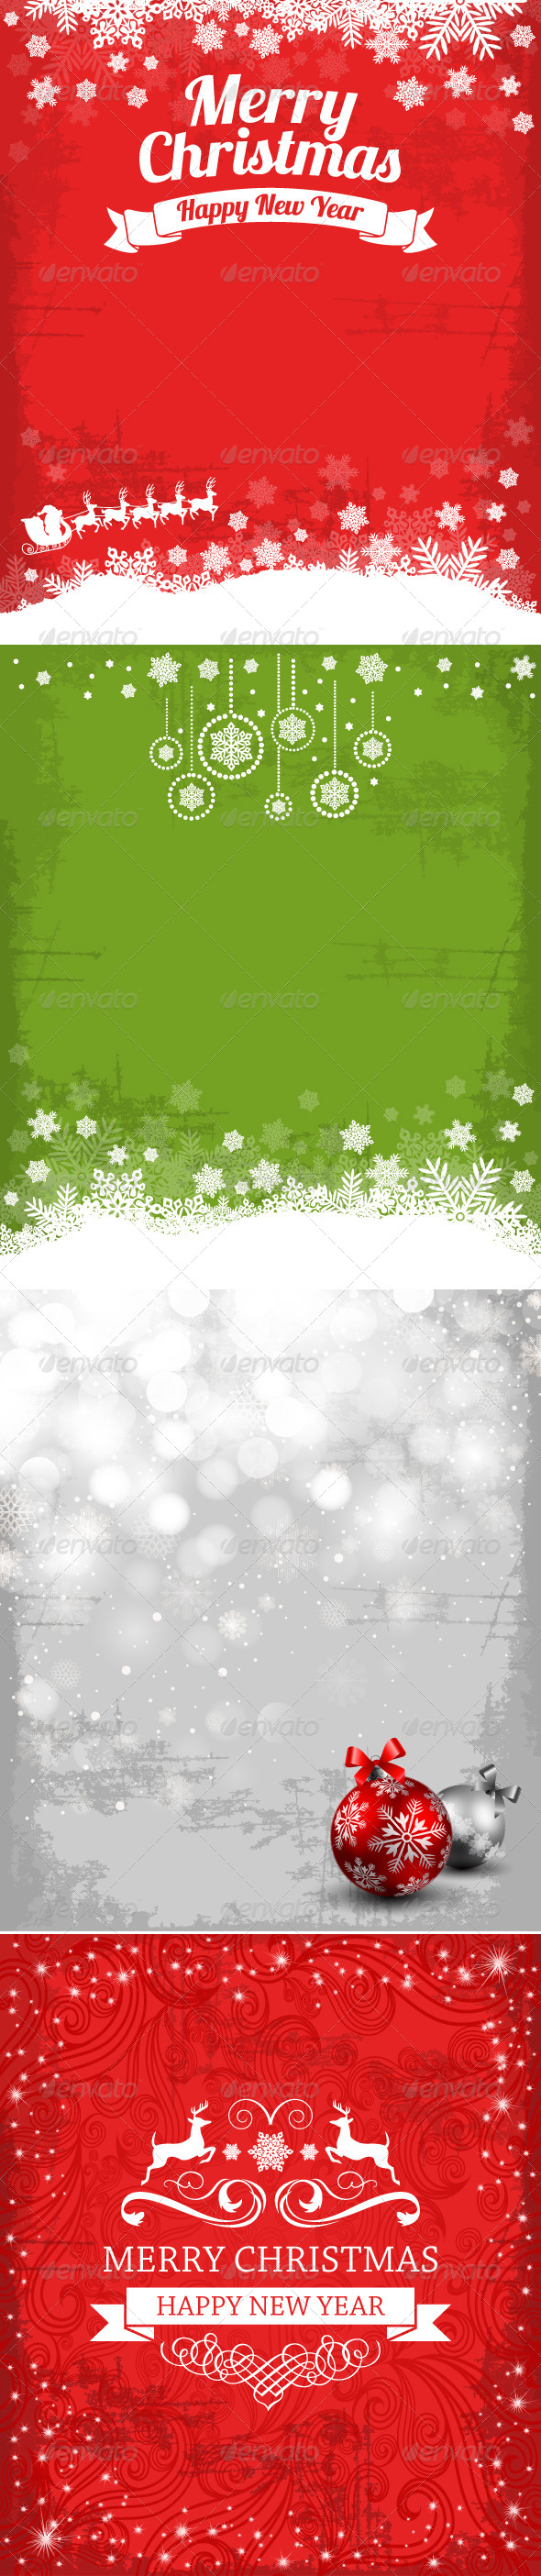 GraphicRiver Christmas and Holiday Backgrounds 6239026